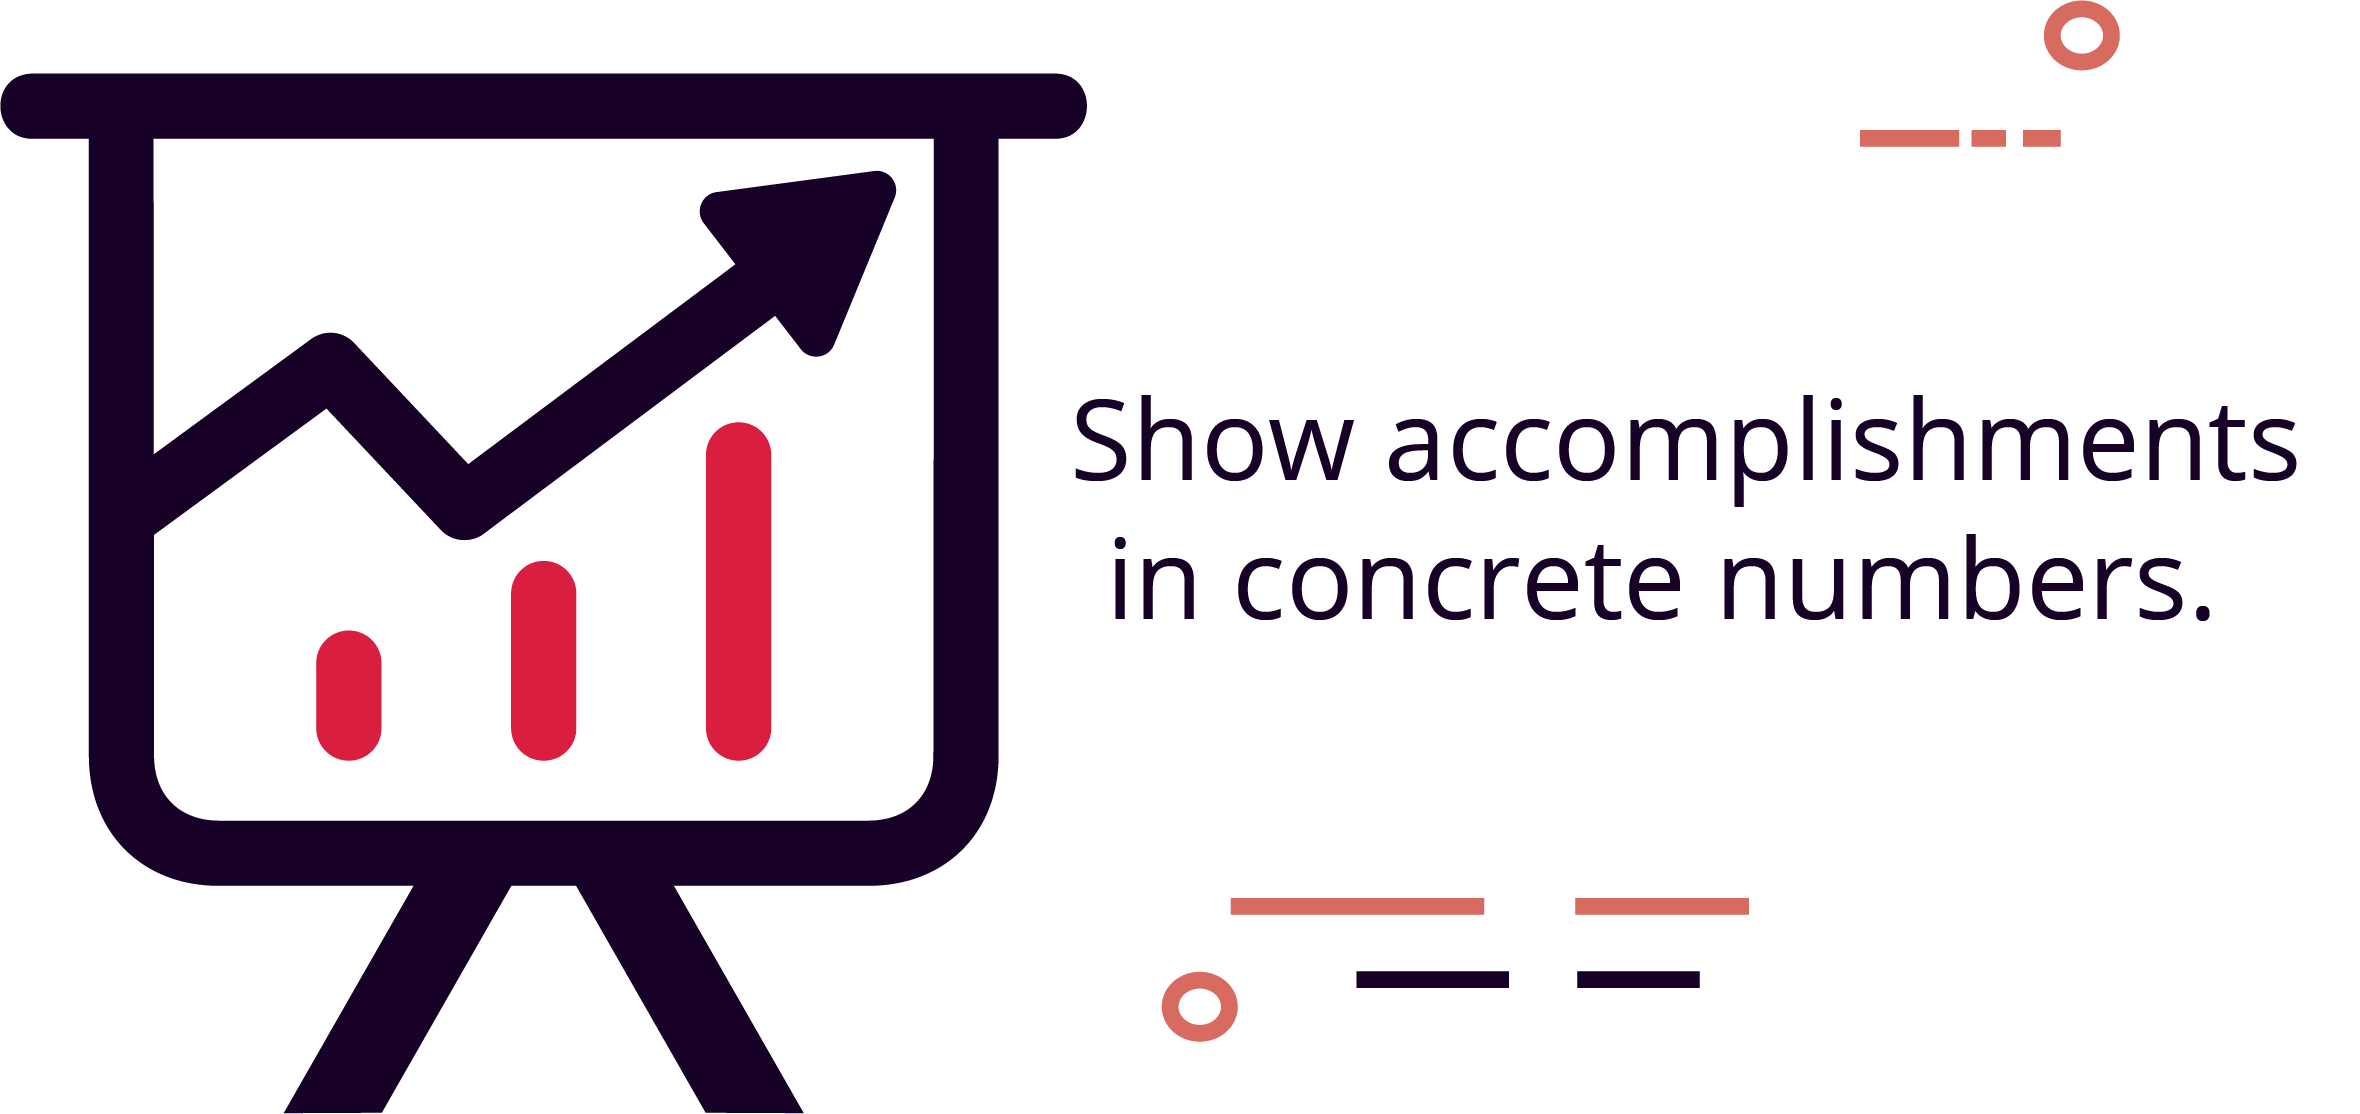 Using concrete numbers makes you 40% more likely to be hired